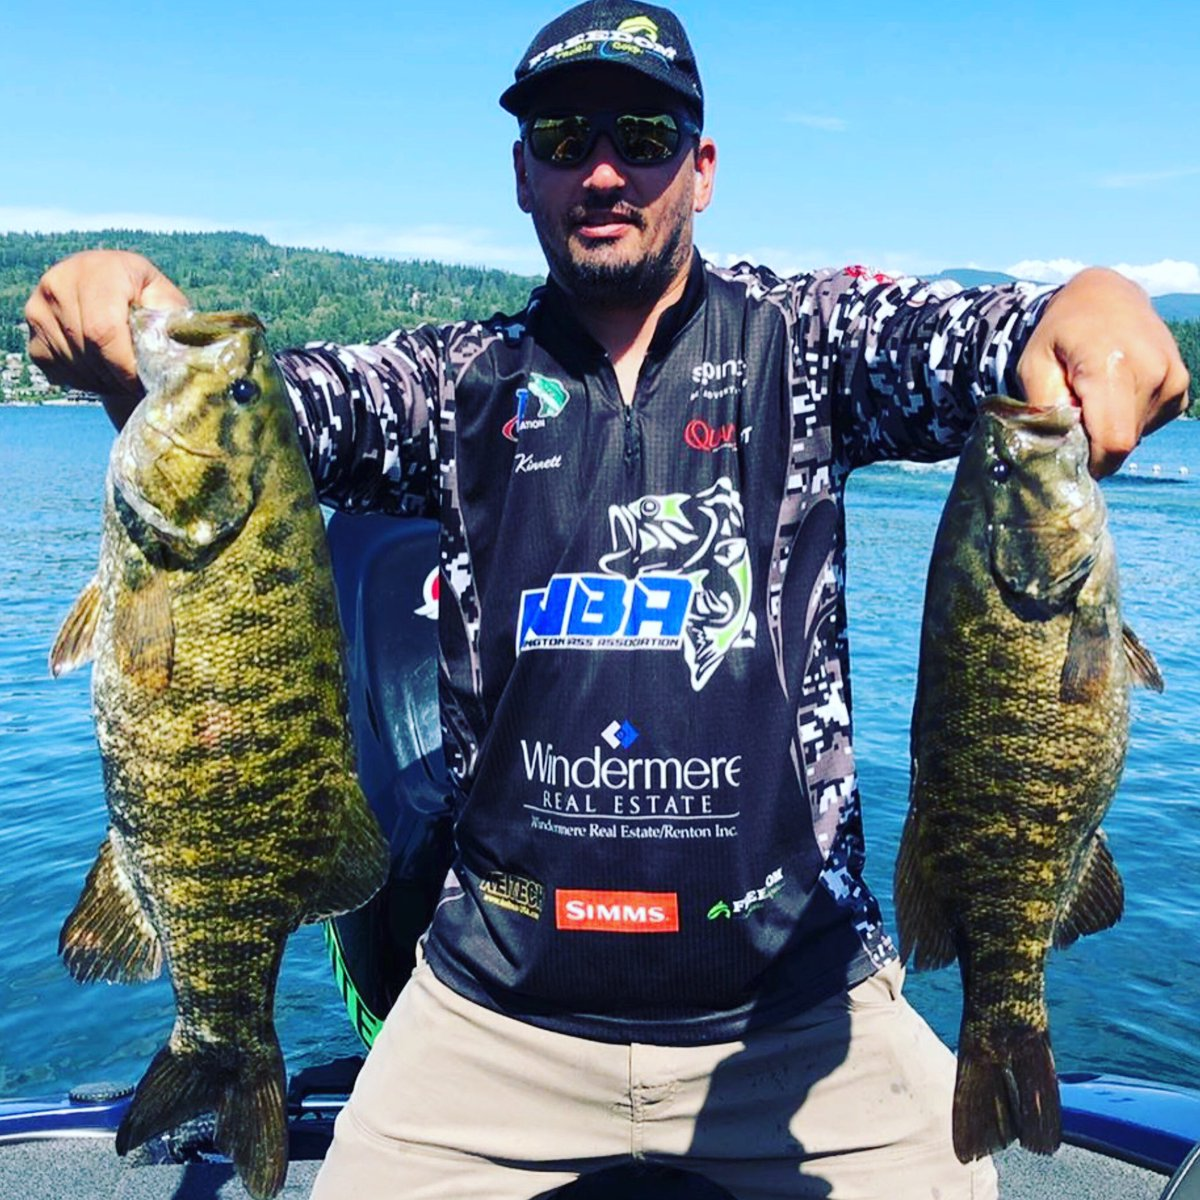 @zethkinnettfishing out on Whatcom fishing the @americanbass Team event with @bassnotti. 3rd Place. Fish On & Keep Dreaming! #ftc #howdoyouswing #fishing #fish #lure #outdoors #freedomtackle #ftc #boating #bassboat #freedomtackle #bassfishing #catchandrelease #largemouth